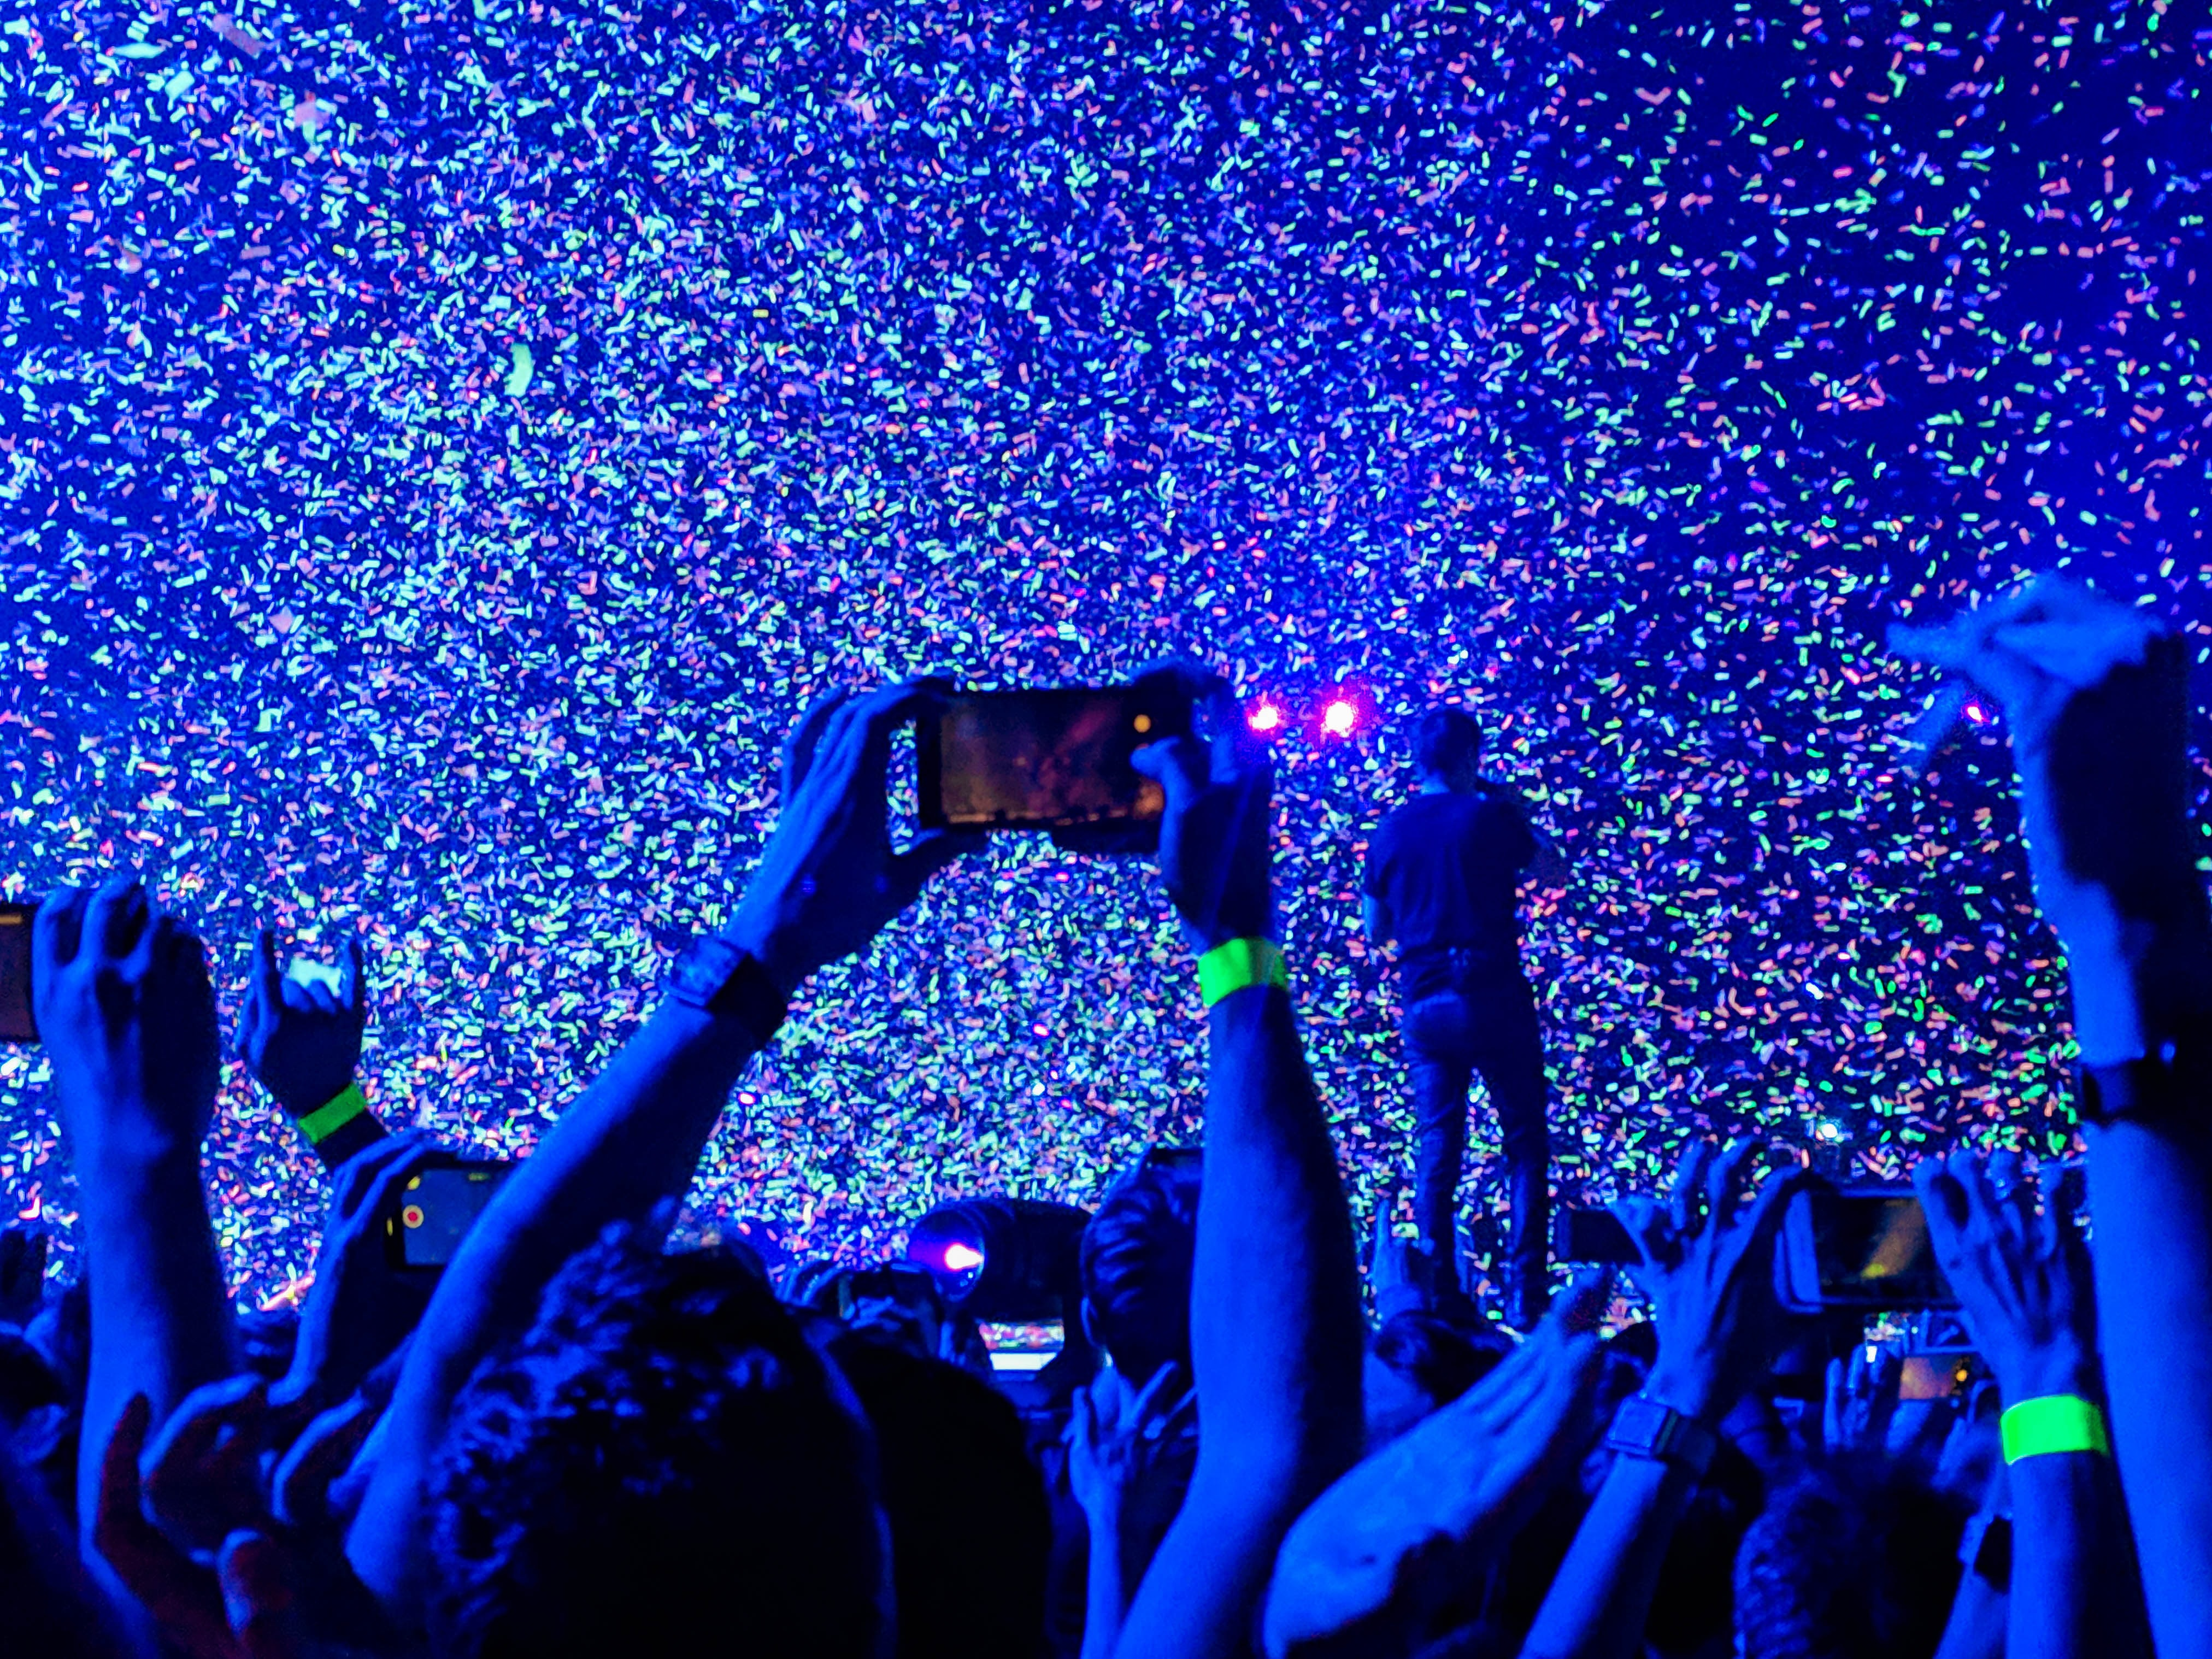 crowd of people taking a picture of person performing on stage